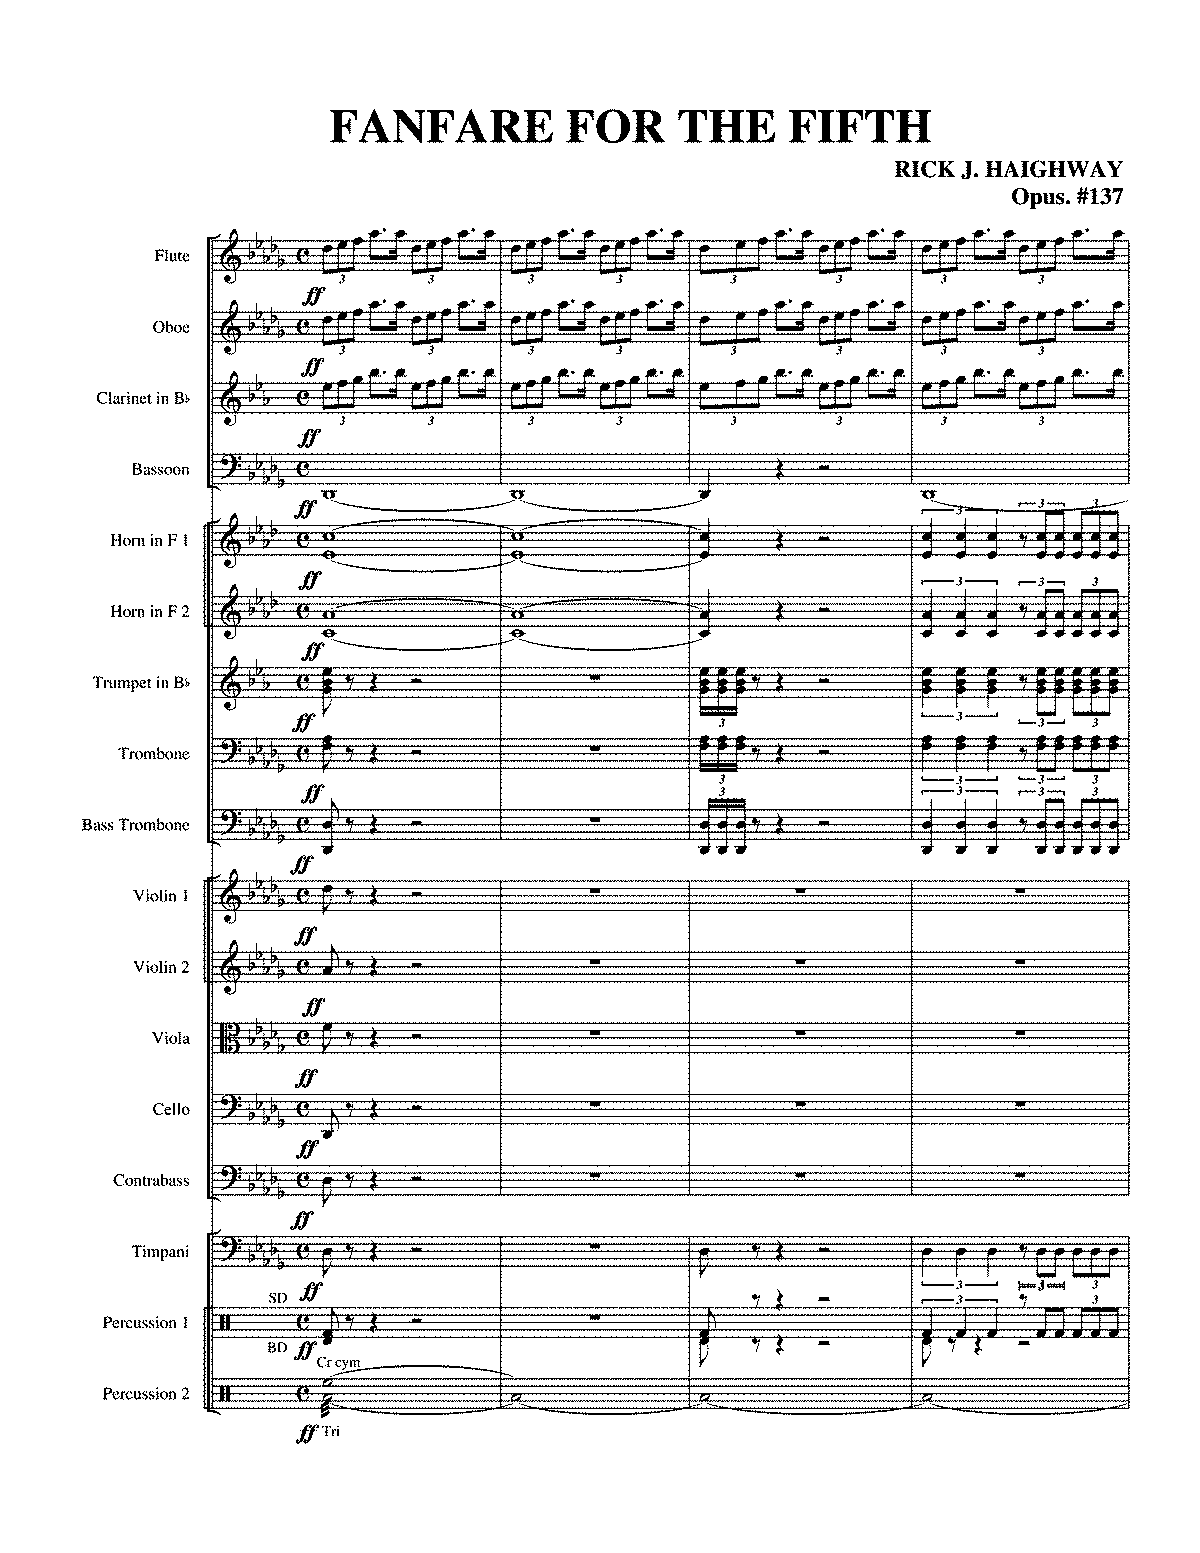 PMLP530589-Finale PrintMusic 2008 - -fANFARE FOR 5TH-.pdf